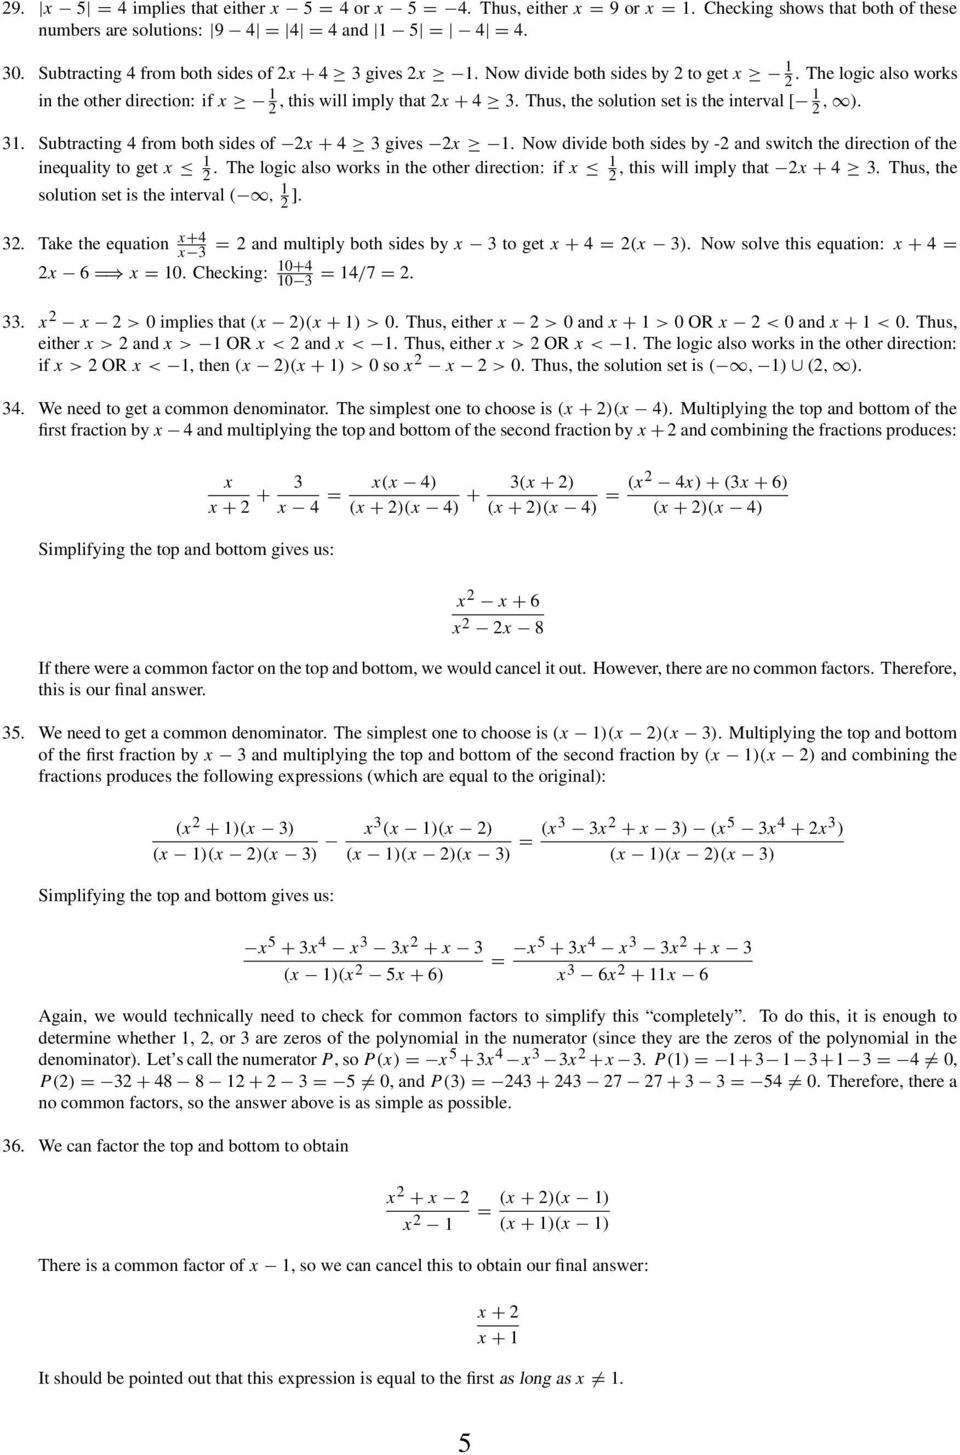 Algebra Practice Problems for Precalculus and Calculus - PDF